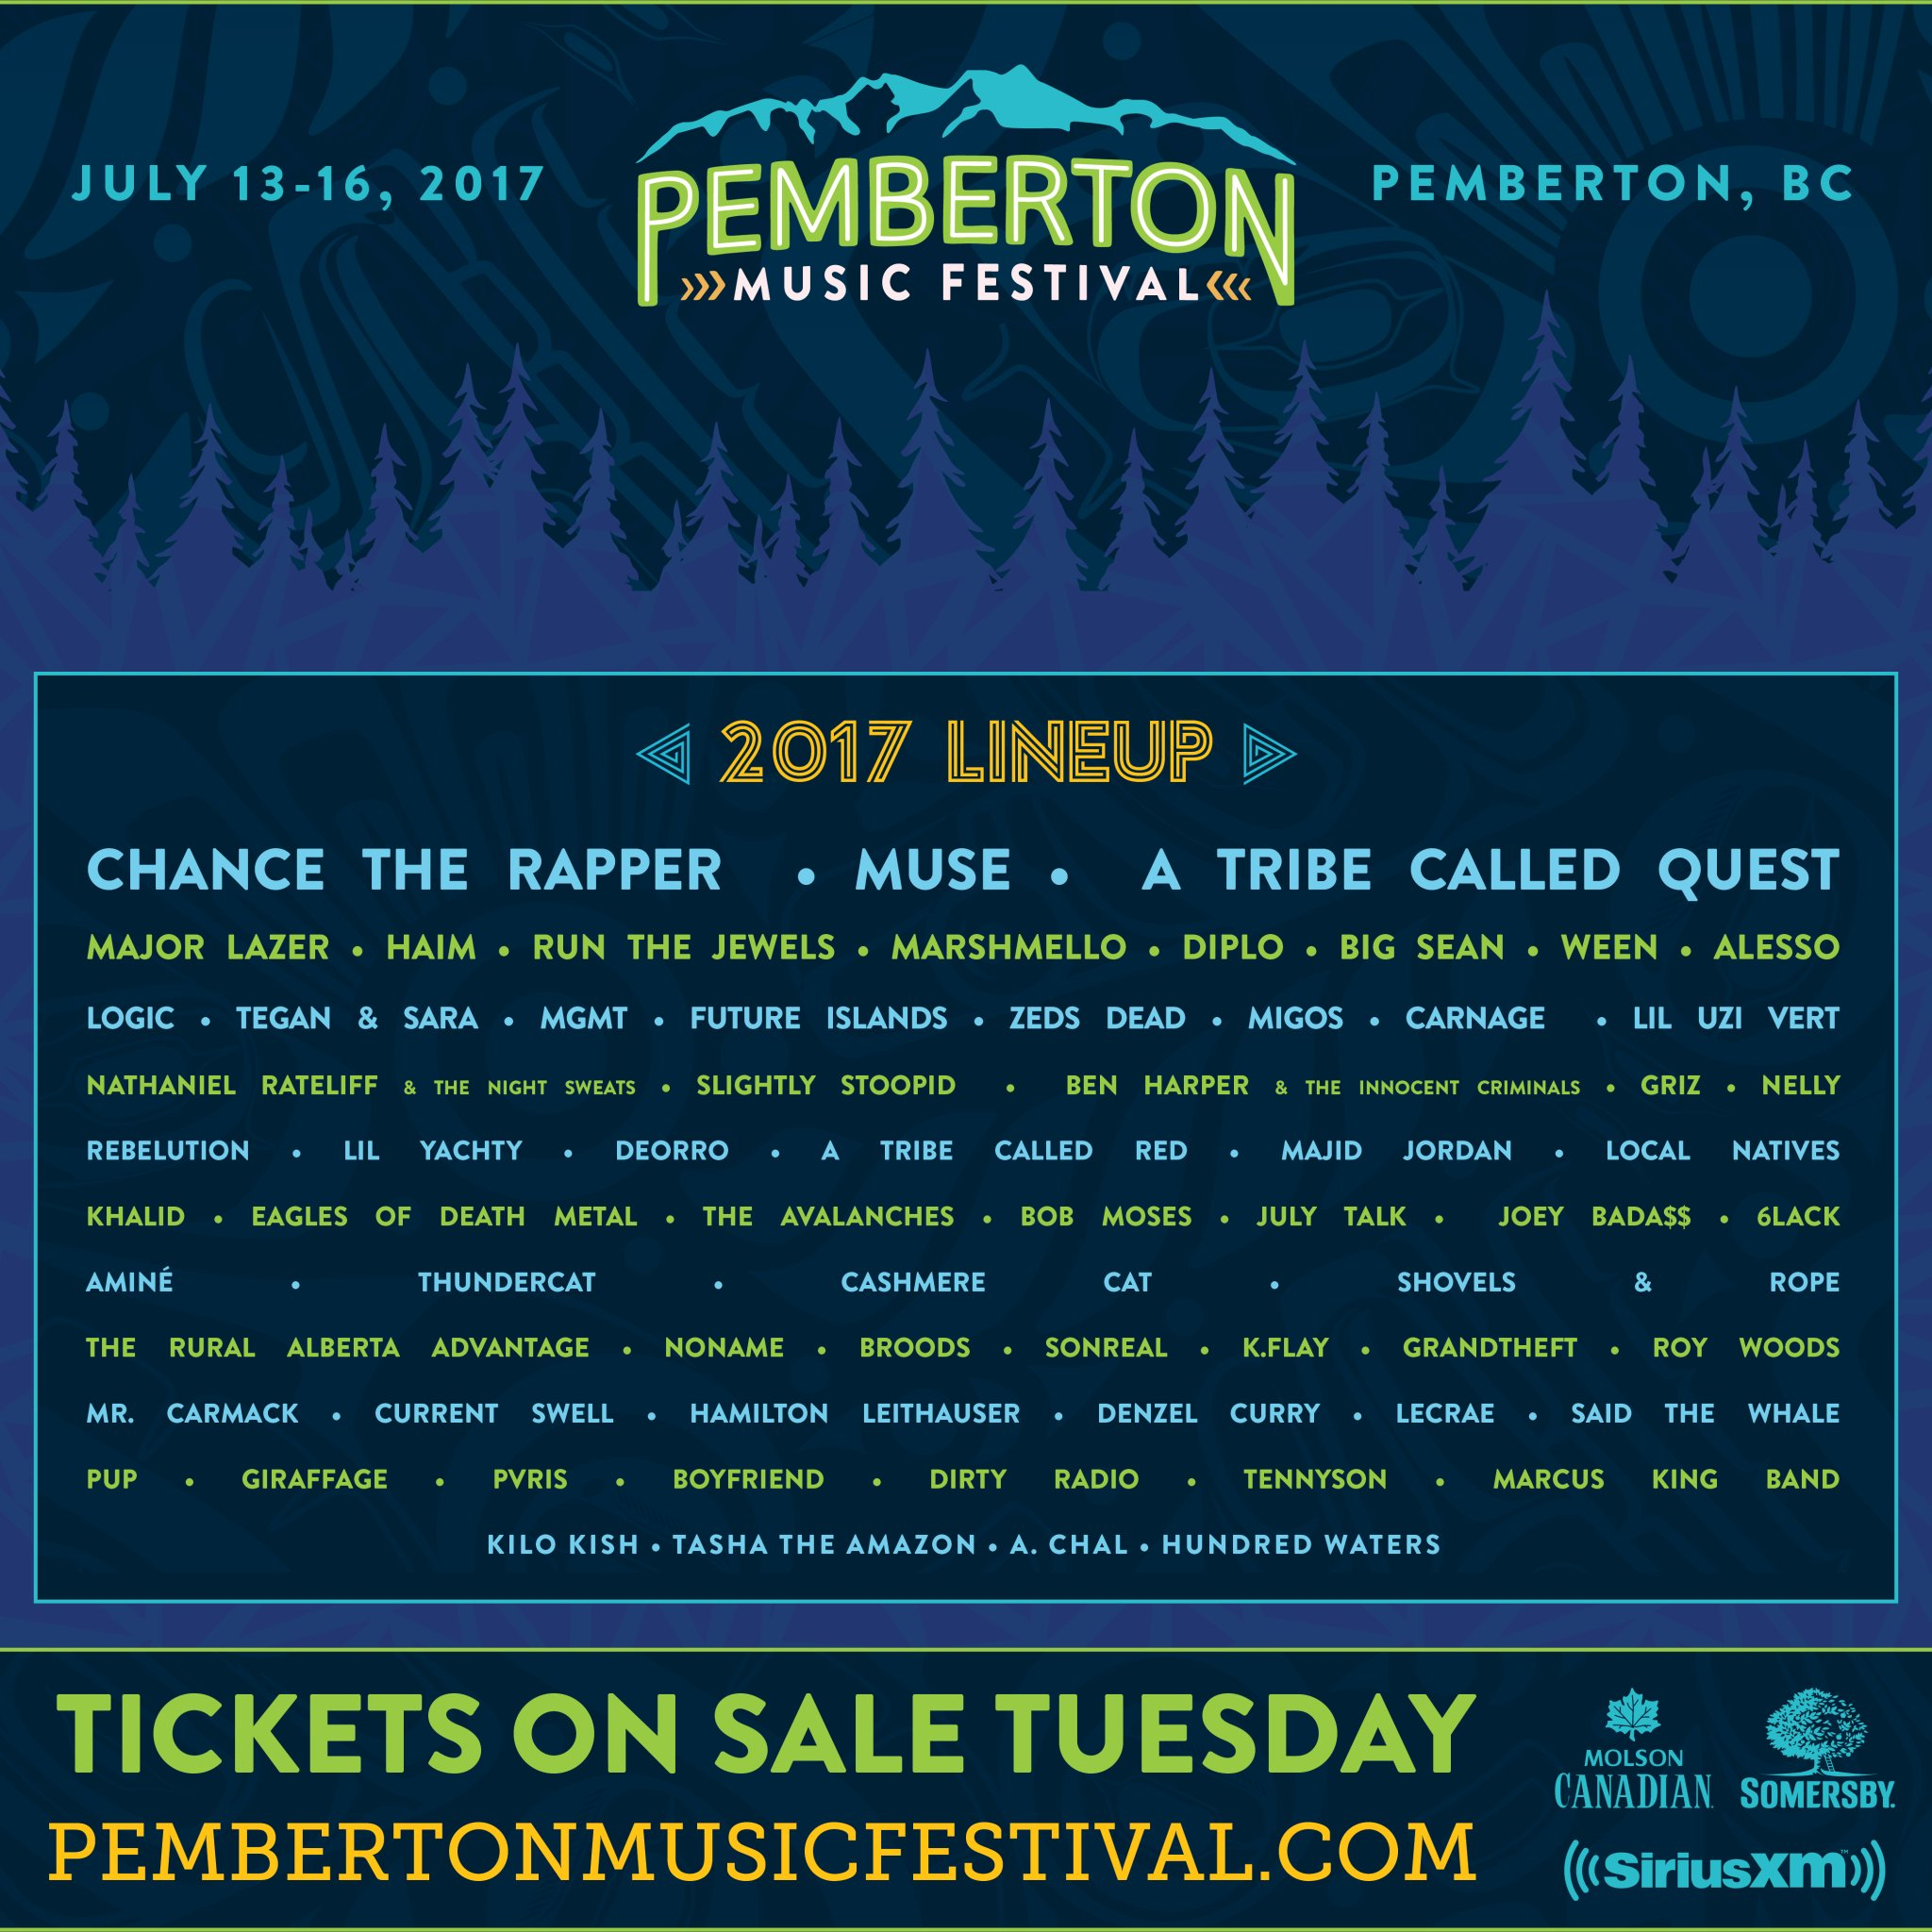 c g7igyxcae0nkv Pemberton Music Festival announces 2017 lineup: A Tribe Called Quest, Chance the Rapper, Muse